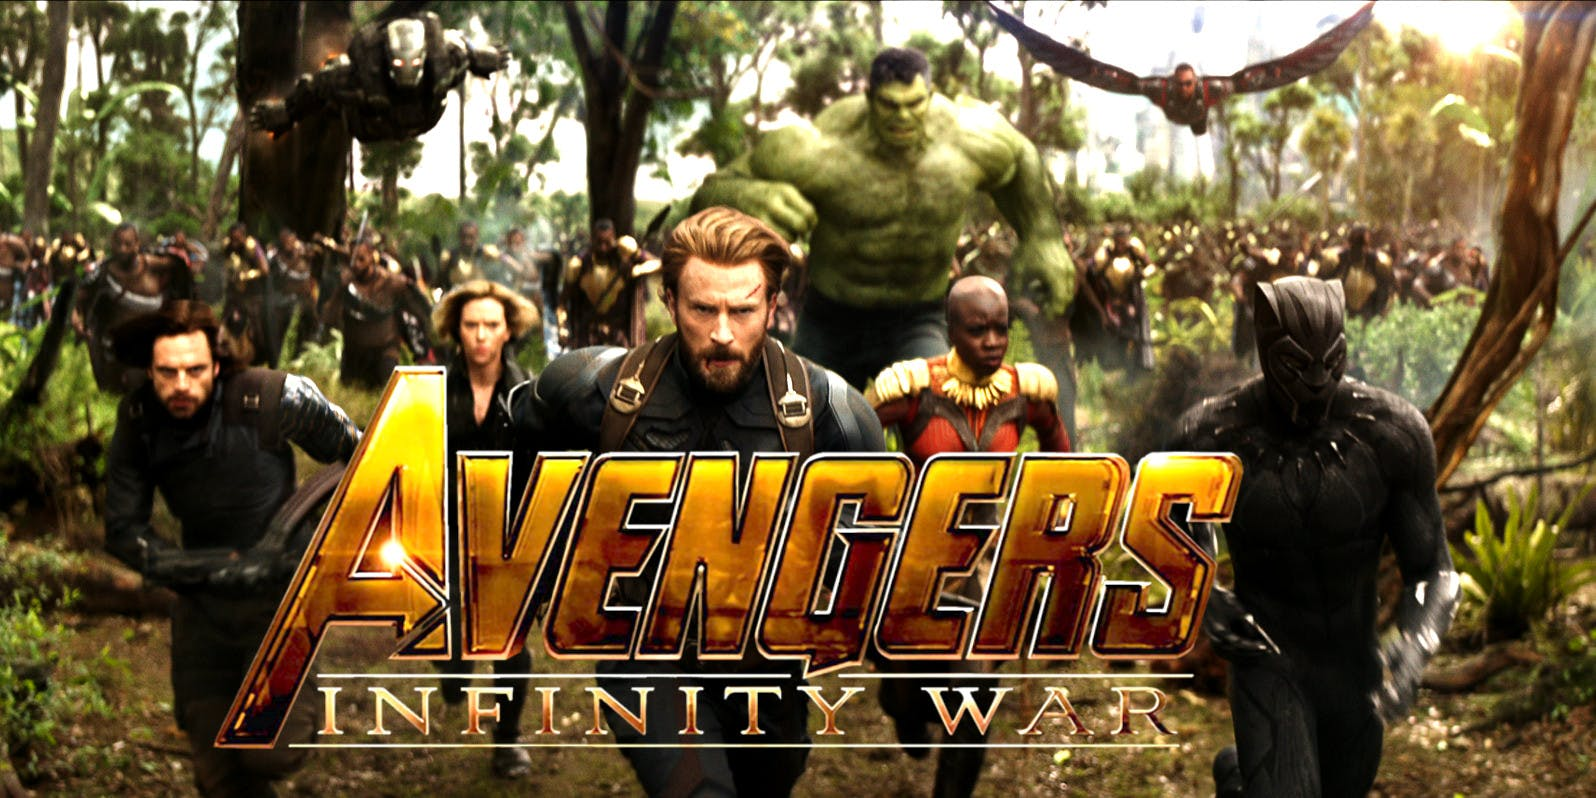 Avengers Infinity War 1st Day Box Office Collection Total 2nd Worldwide Earning